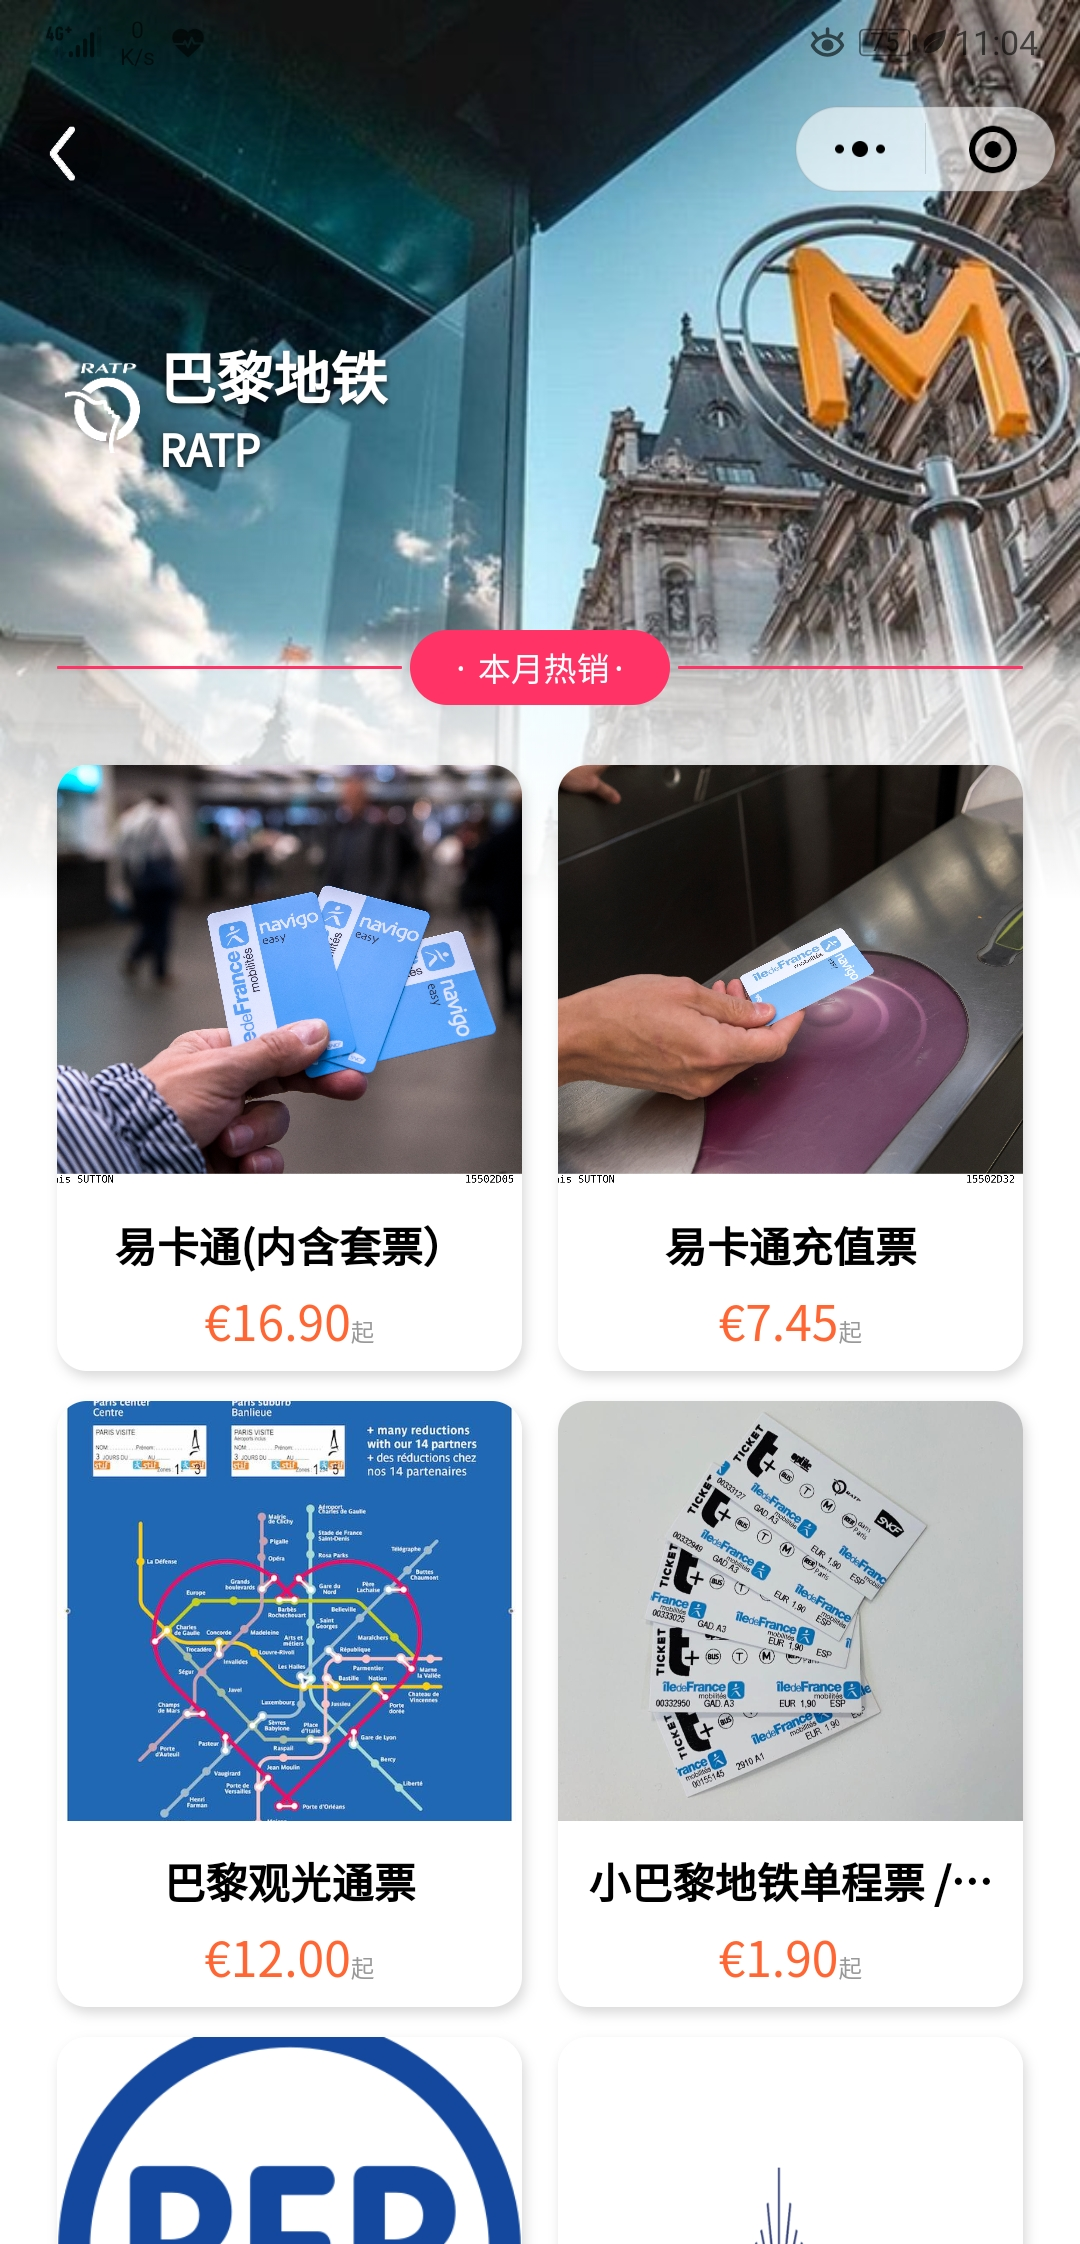 RATP WeChat ticketing